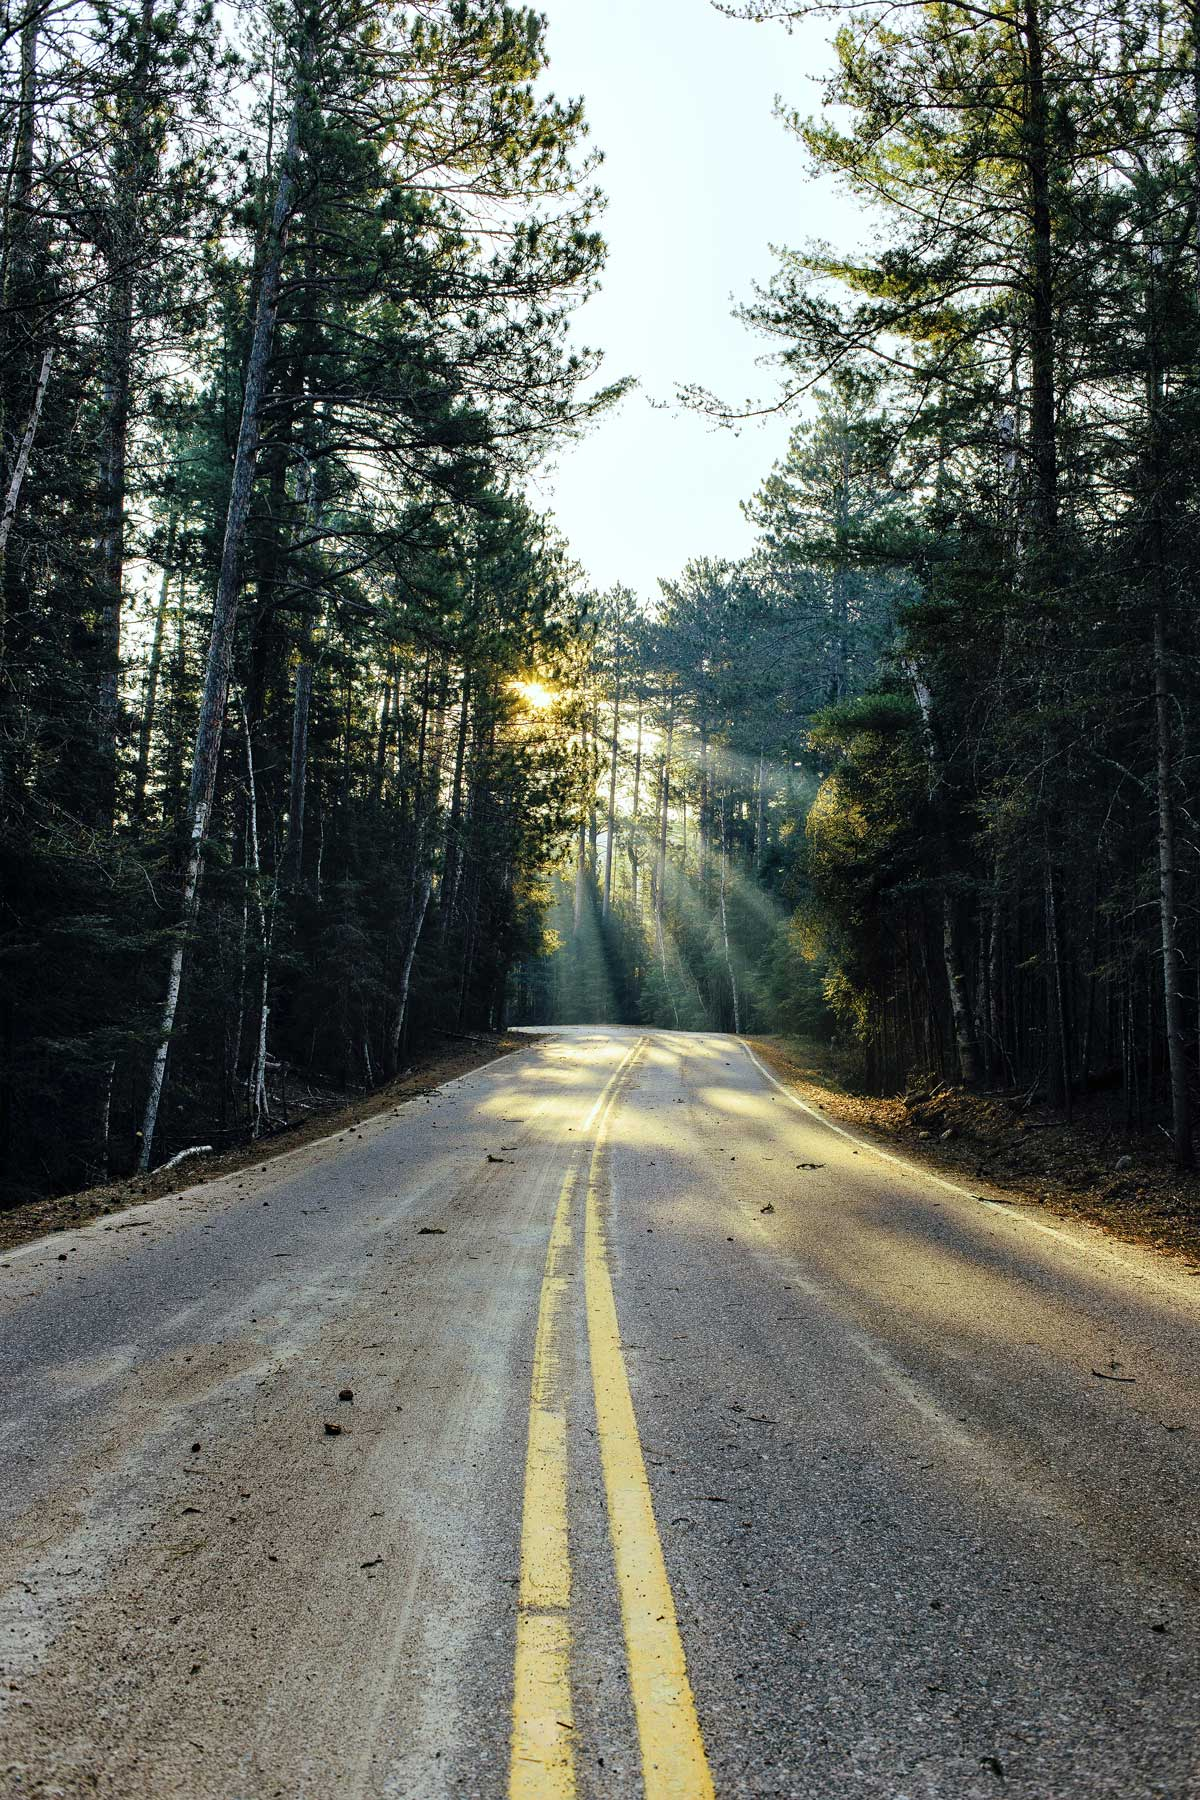 Five tips for any road trip with your partner - 1